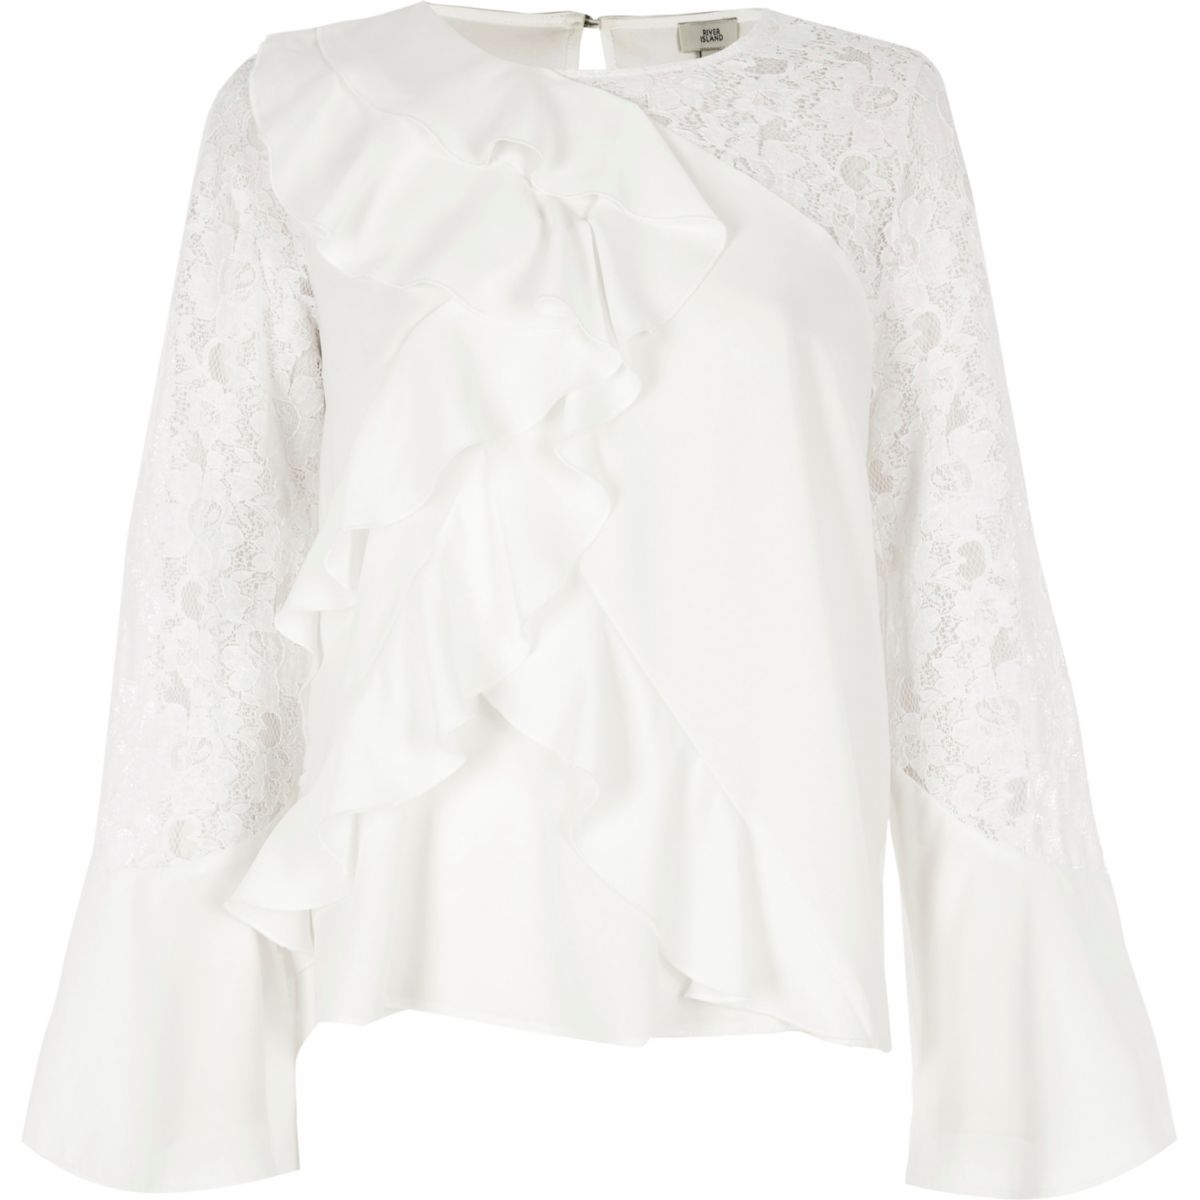 White frill front lace insert top